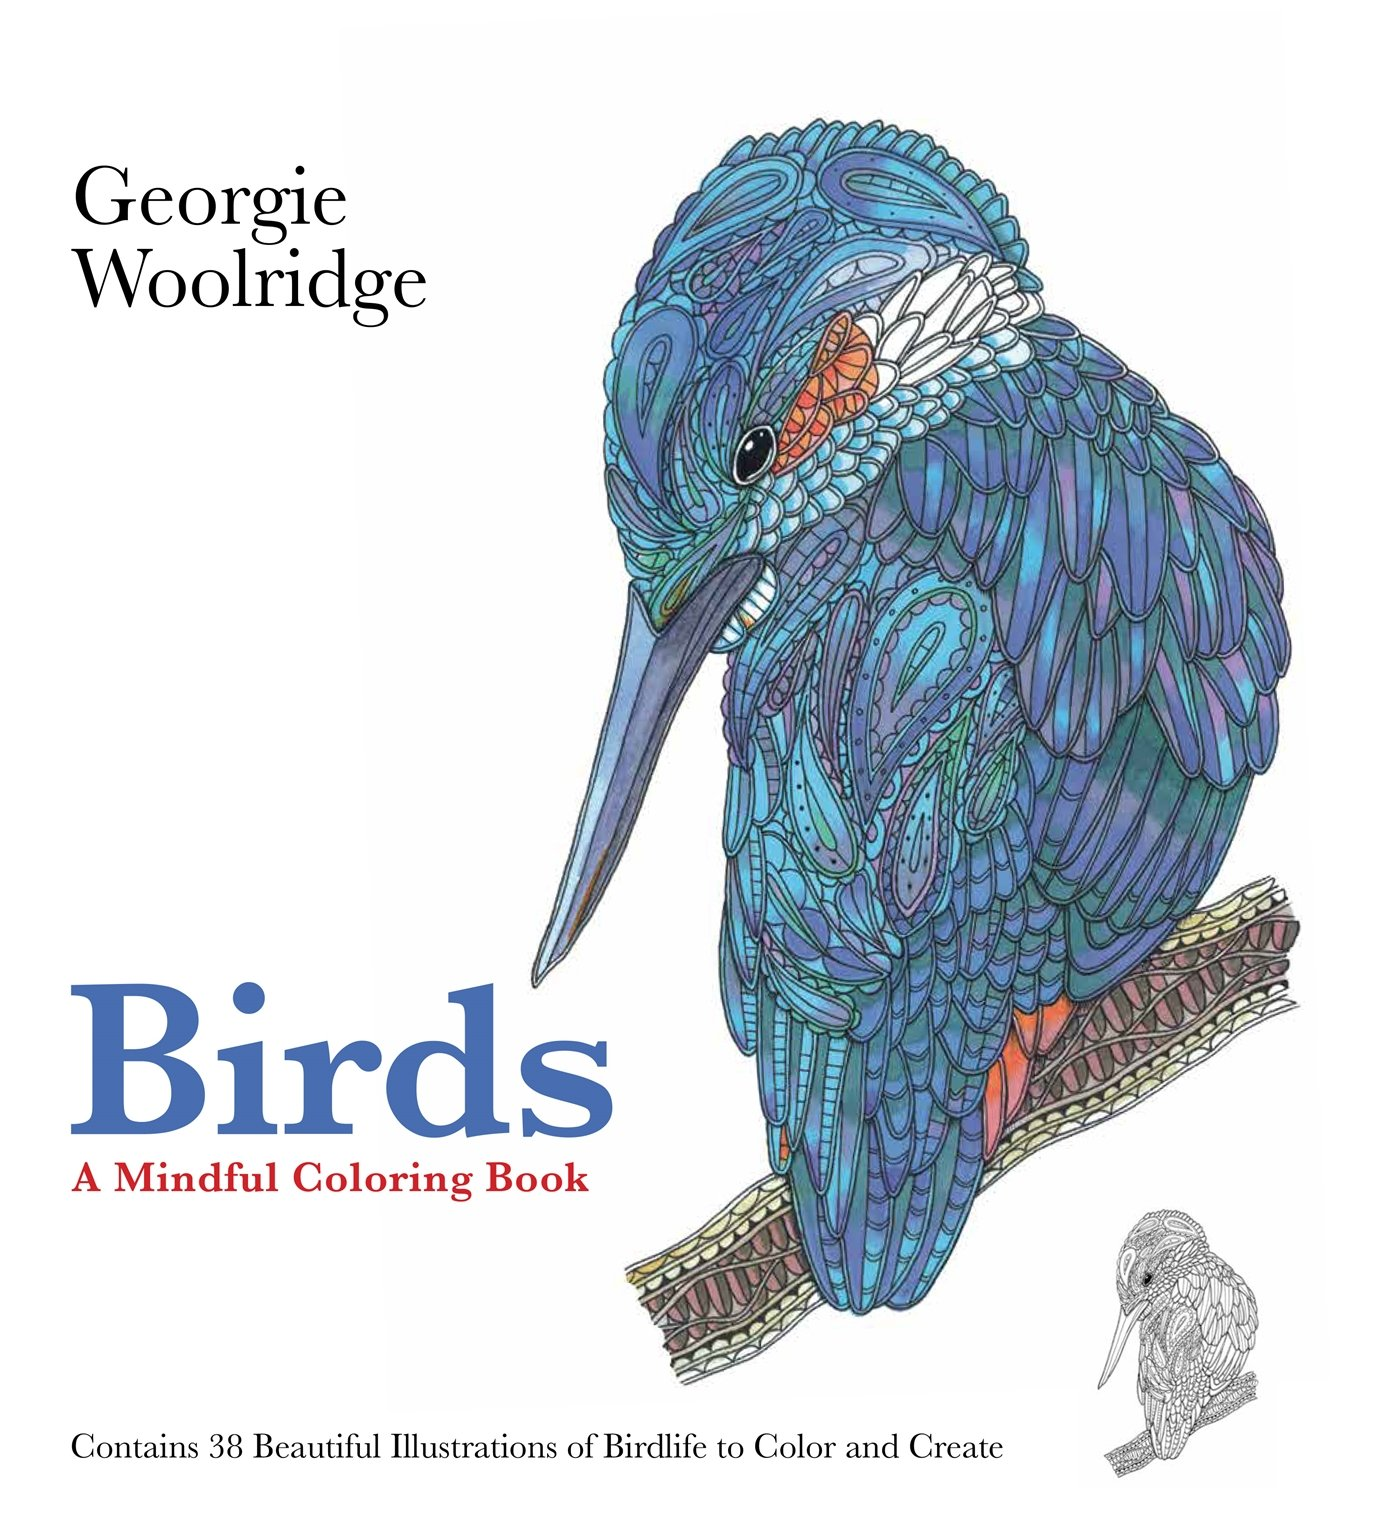 amazon com birds a mindful coloring book 9781250095022